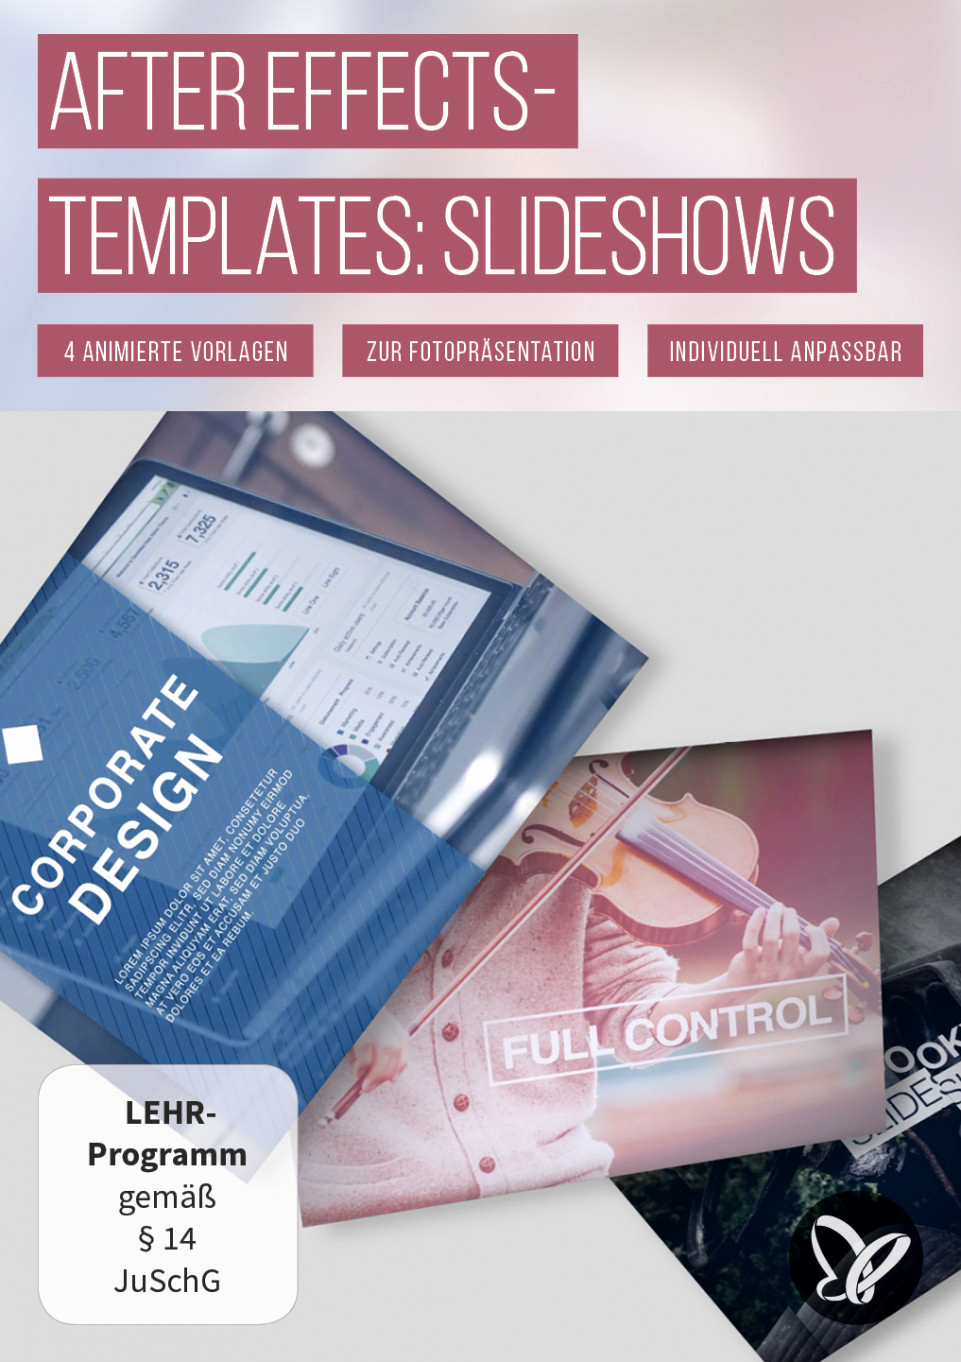 After Effects Slideshow Template Awesome after Effects Slideshow Templates – Dynamische